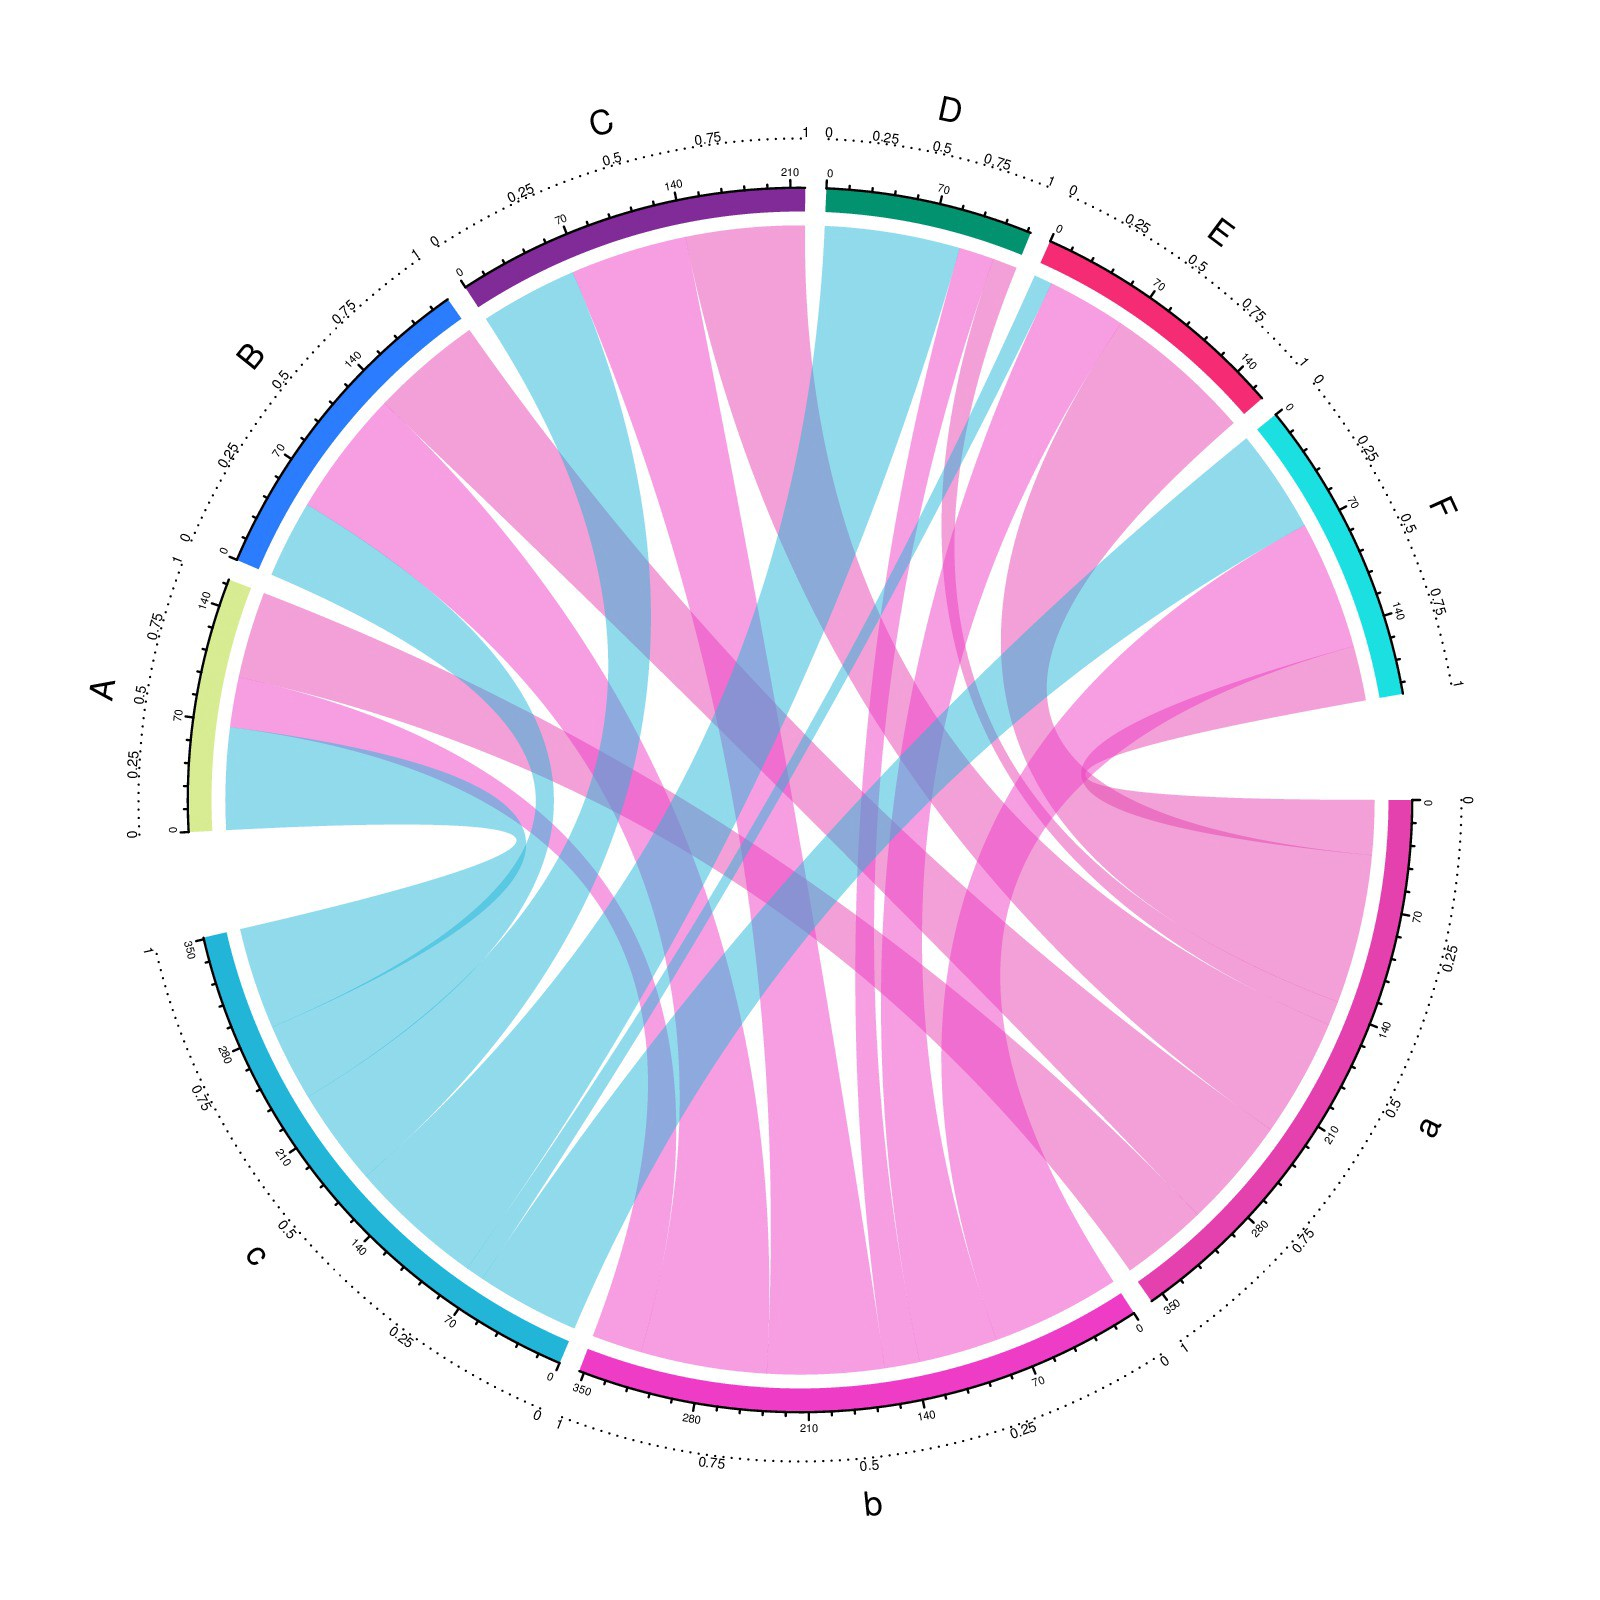 Making genomic data come alive with circos plots - Maria